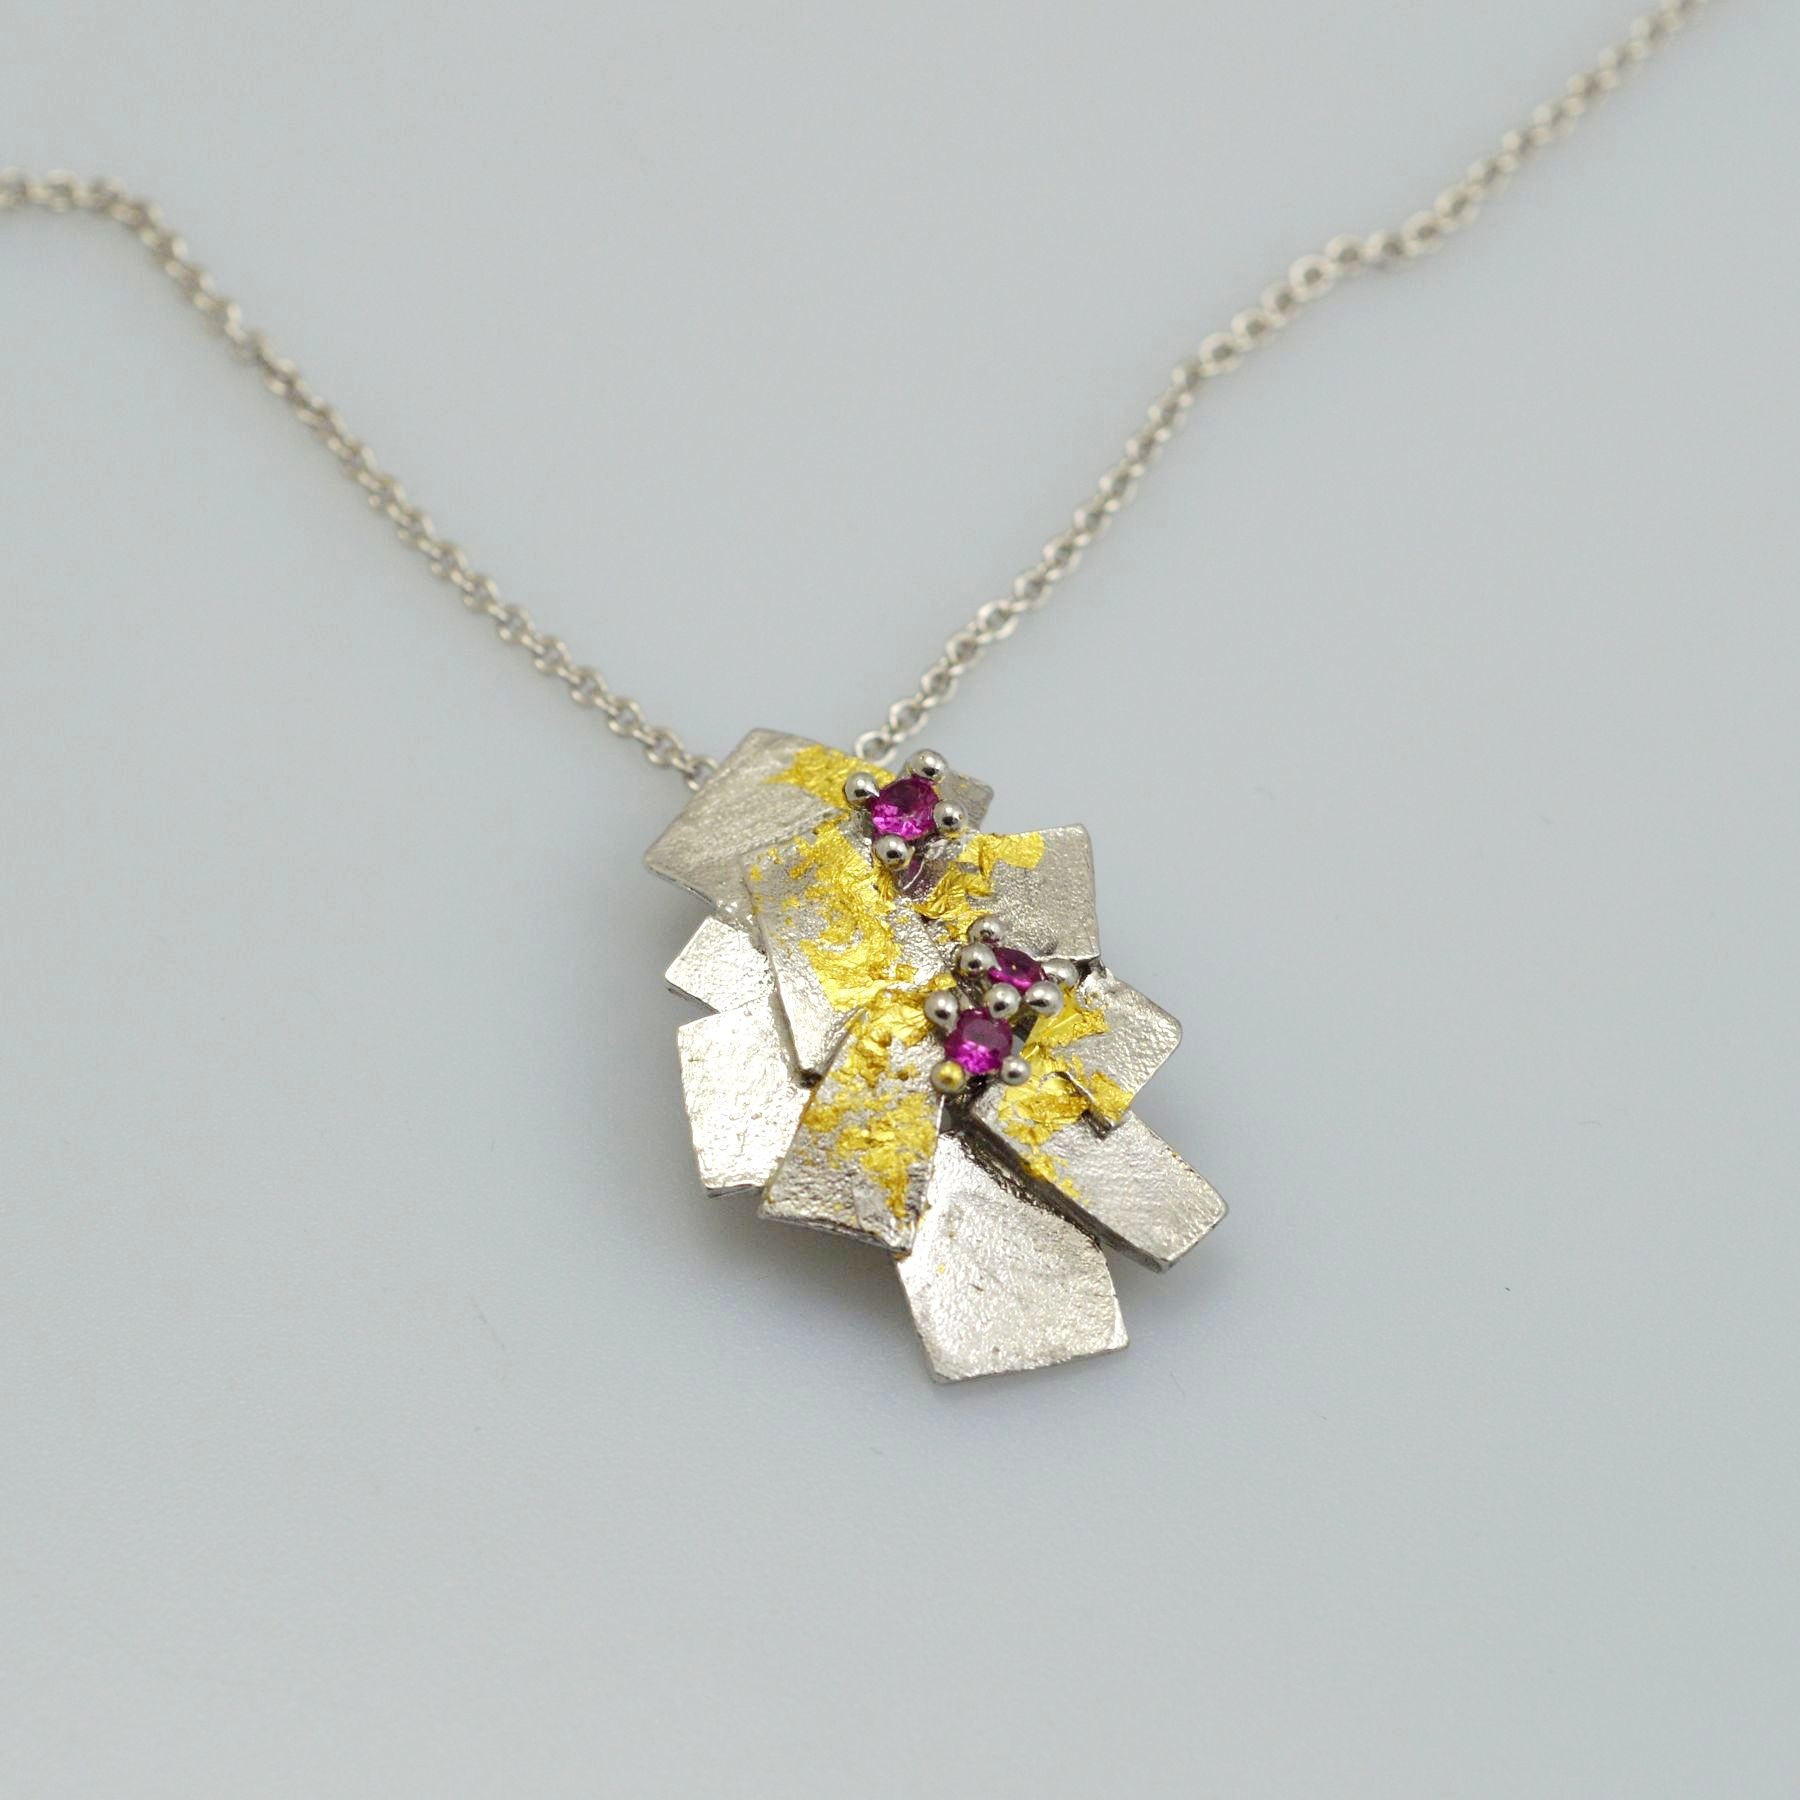 Silver pendant 925 rhodium plated with gold leaf 22K and synthetic stones